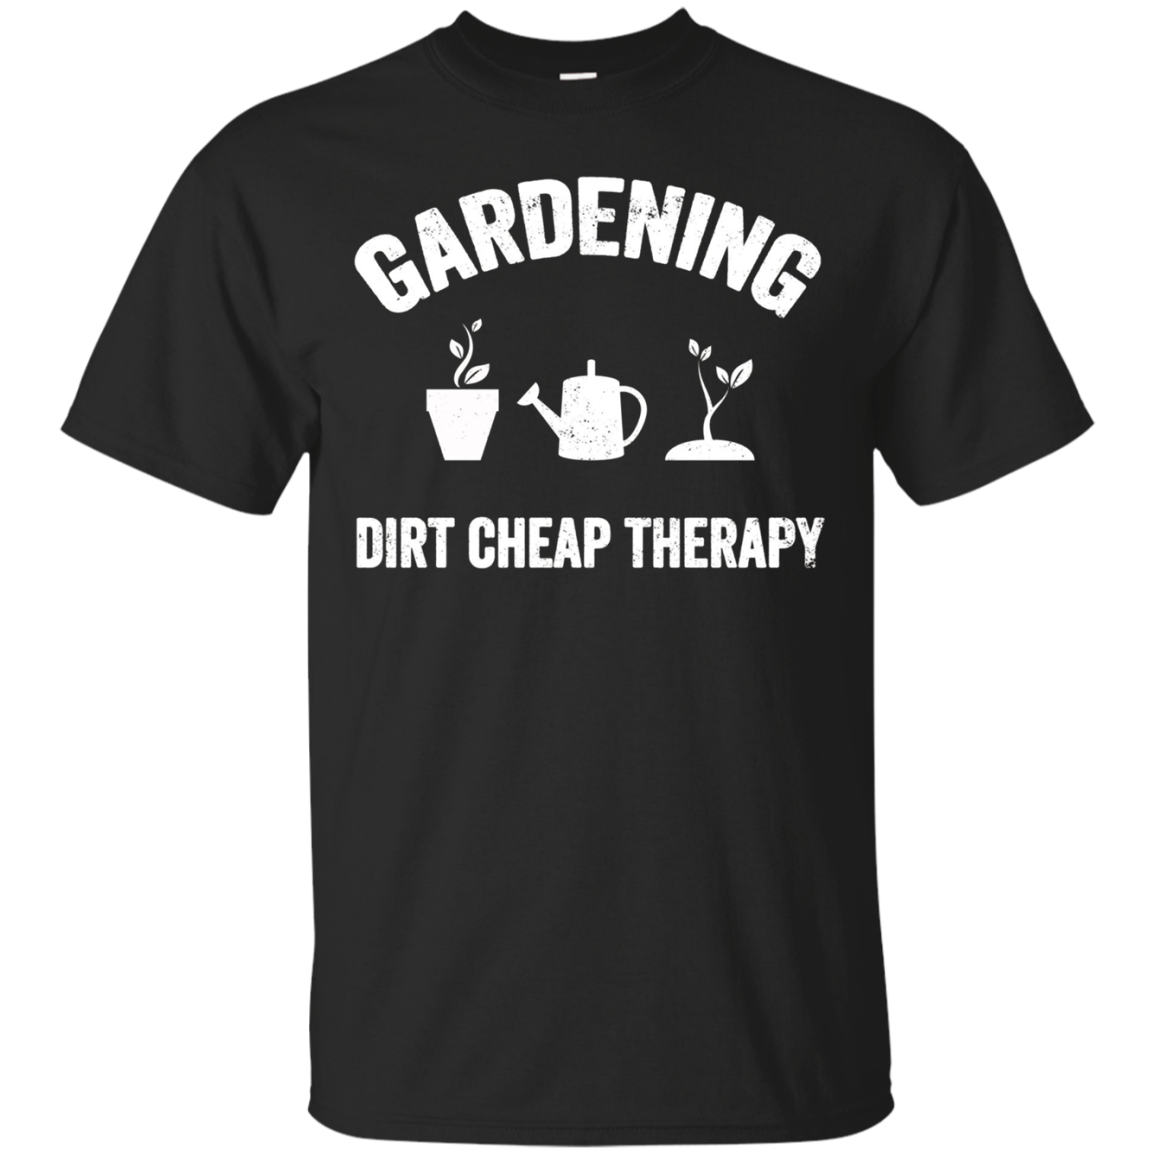 Gardening Dirt Cheap Therapy T-Shirt - Funny Gardener Gift